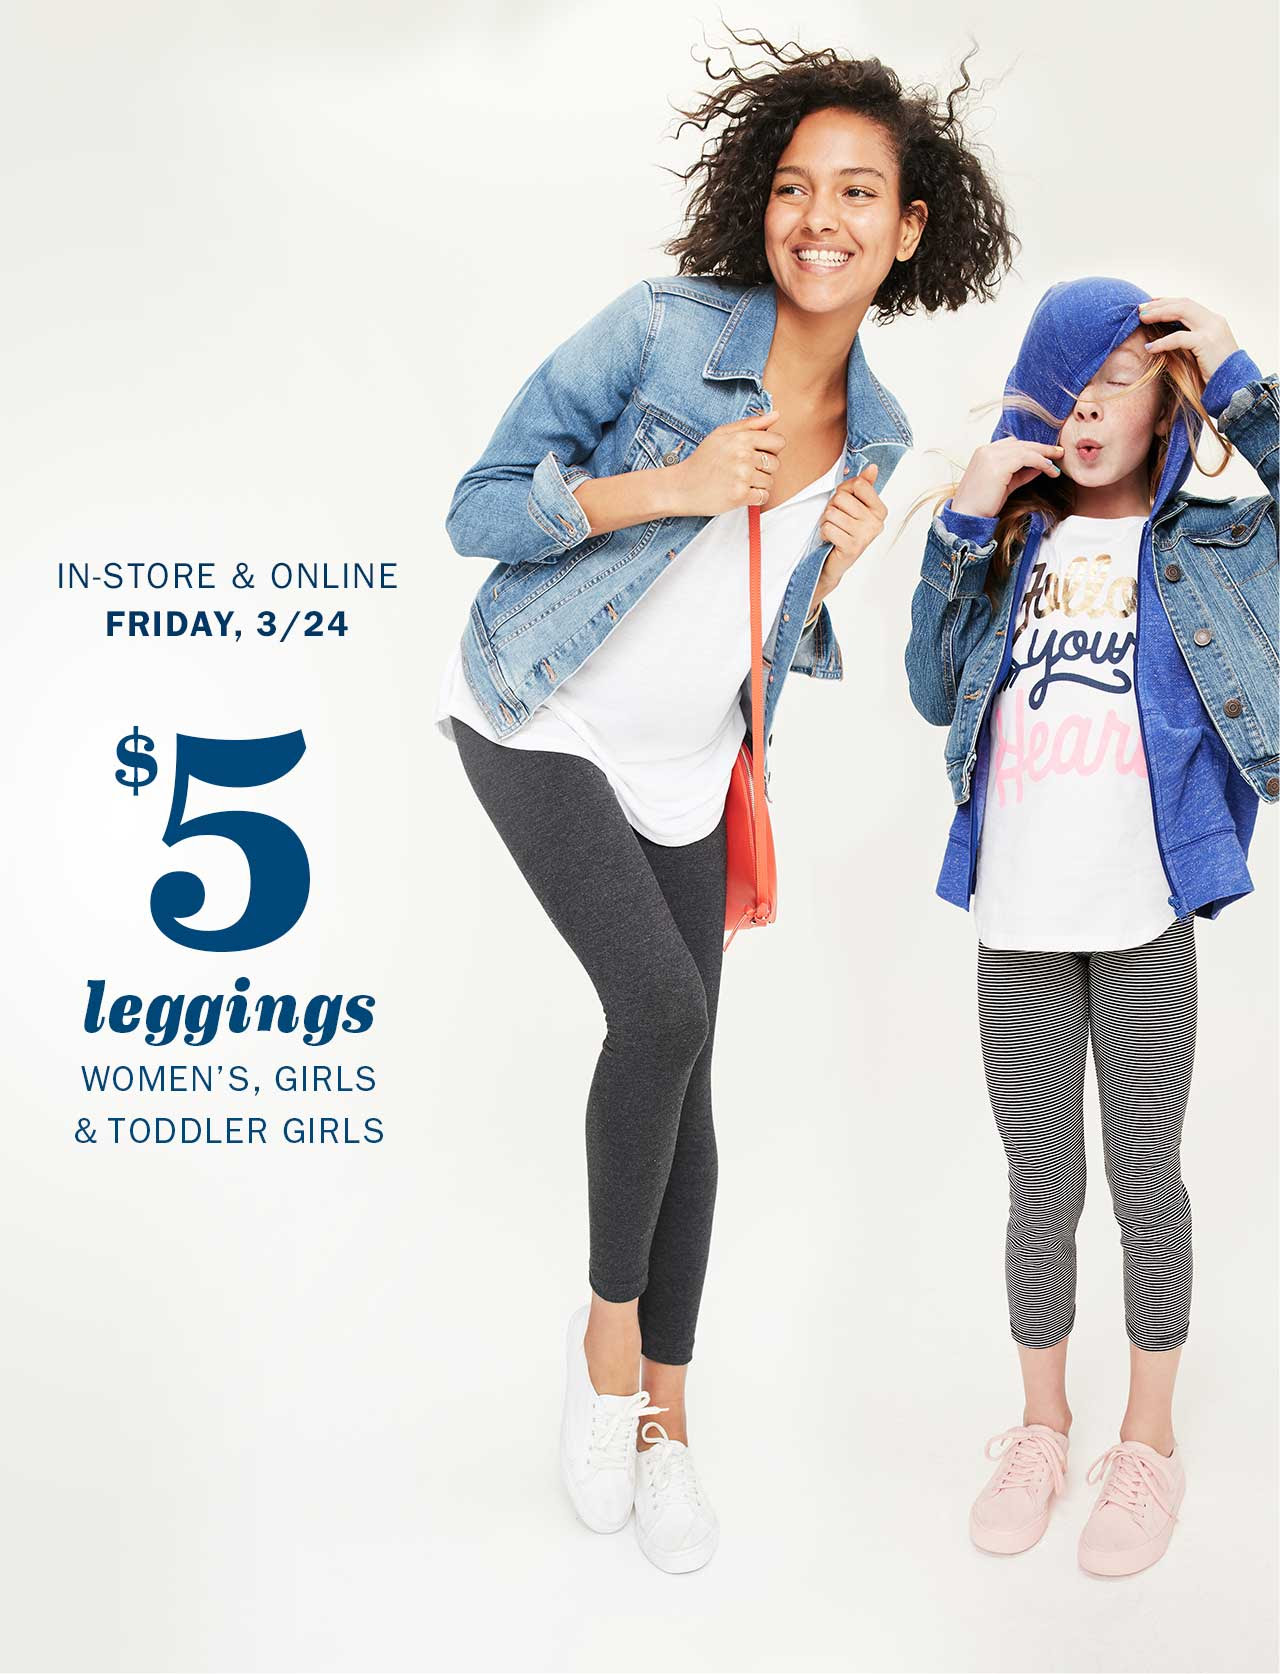 Old Navy: $5 Women's, Girl's and Toddlers Leggings!